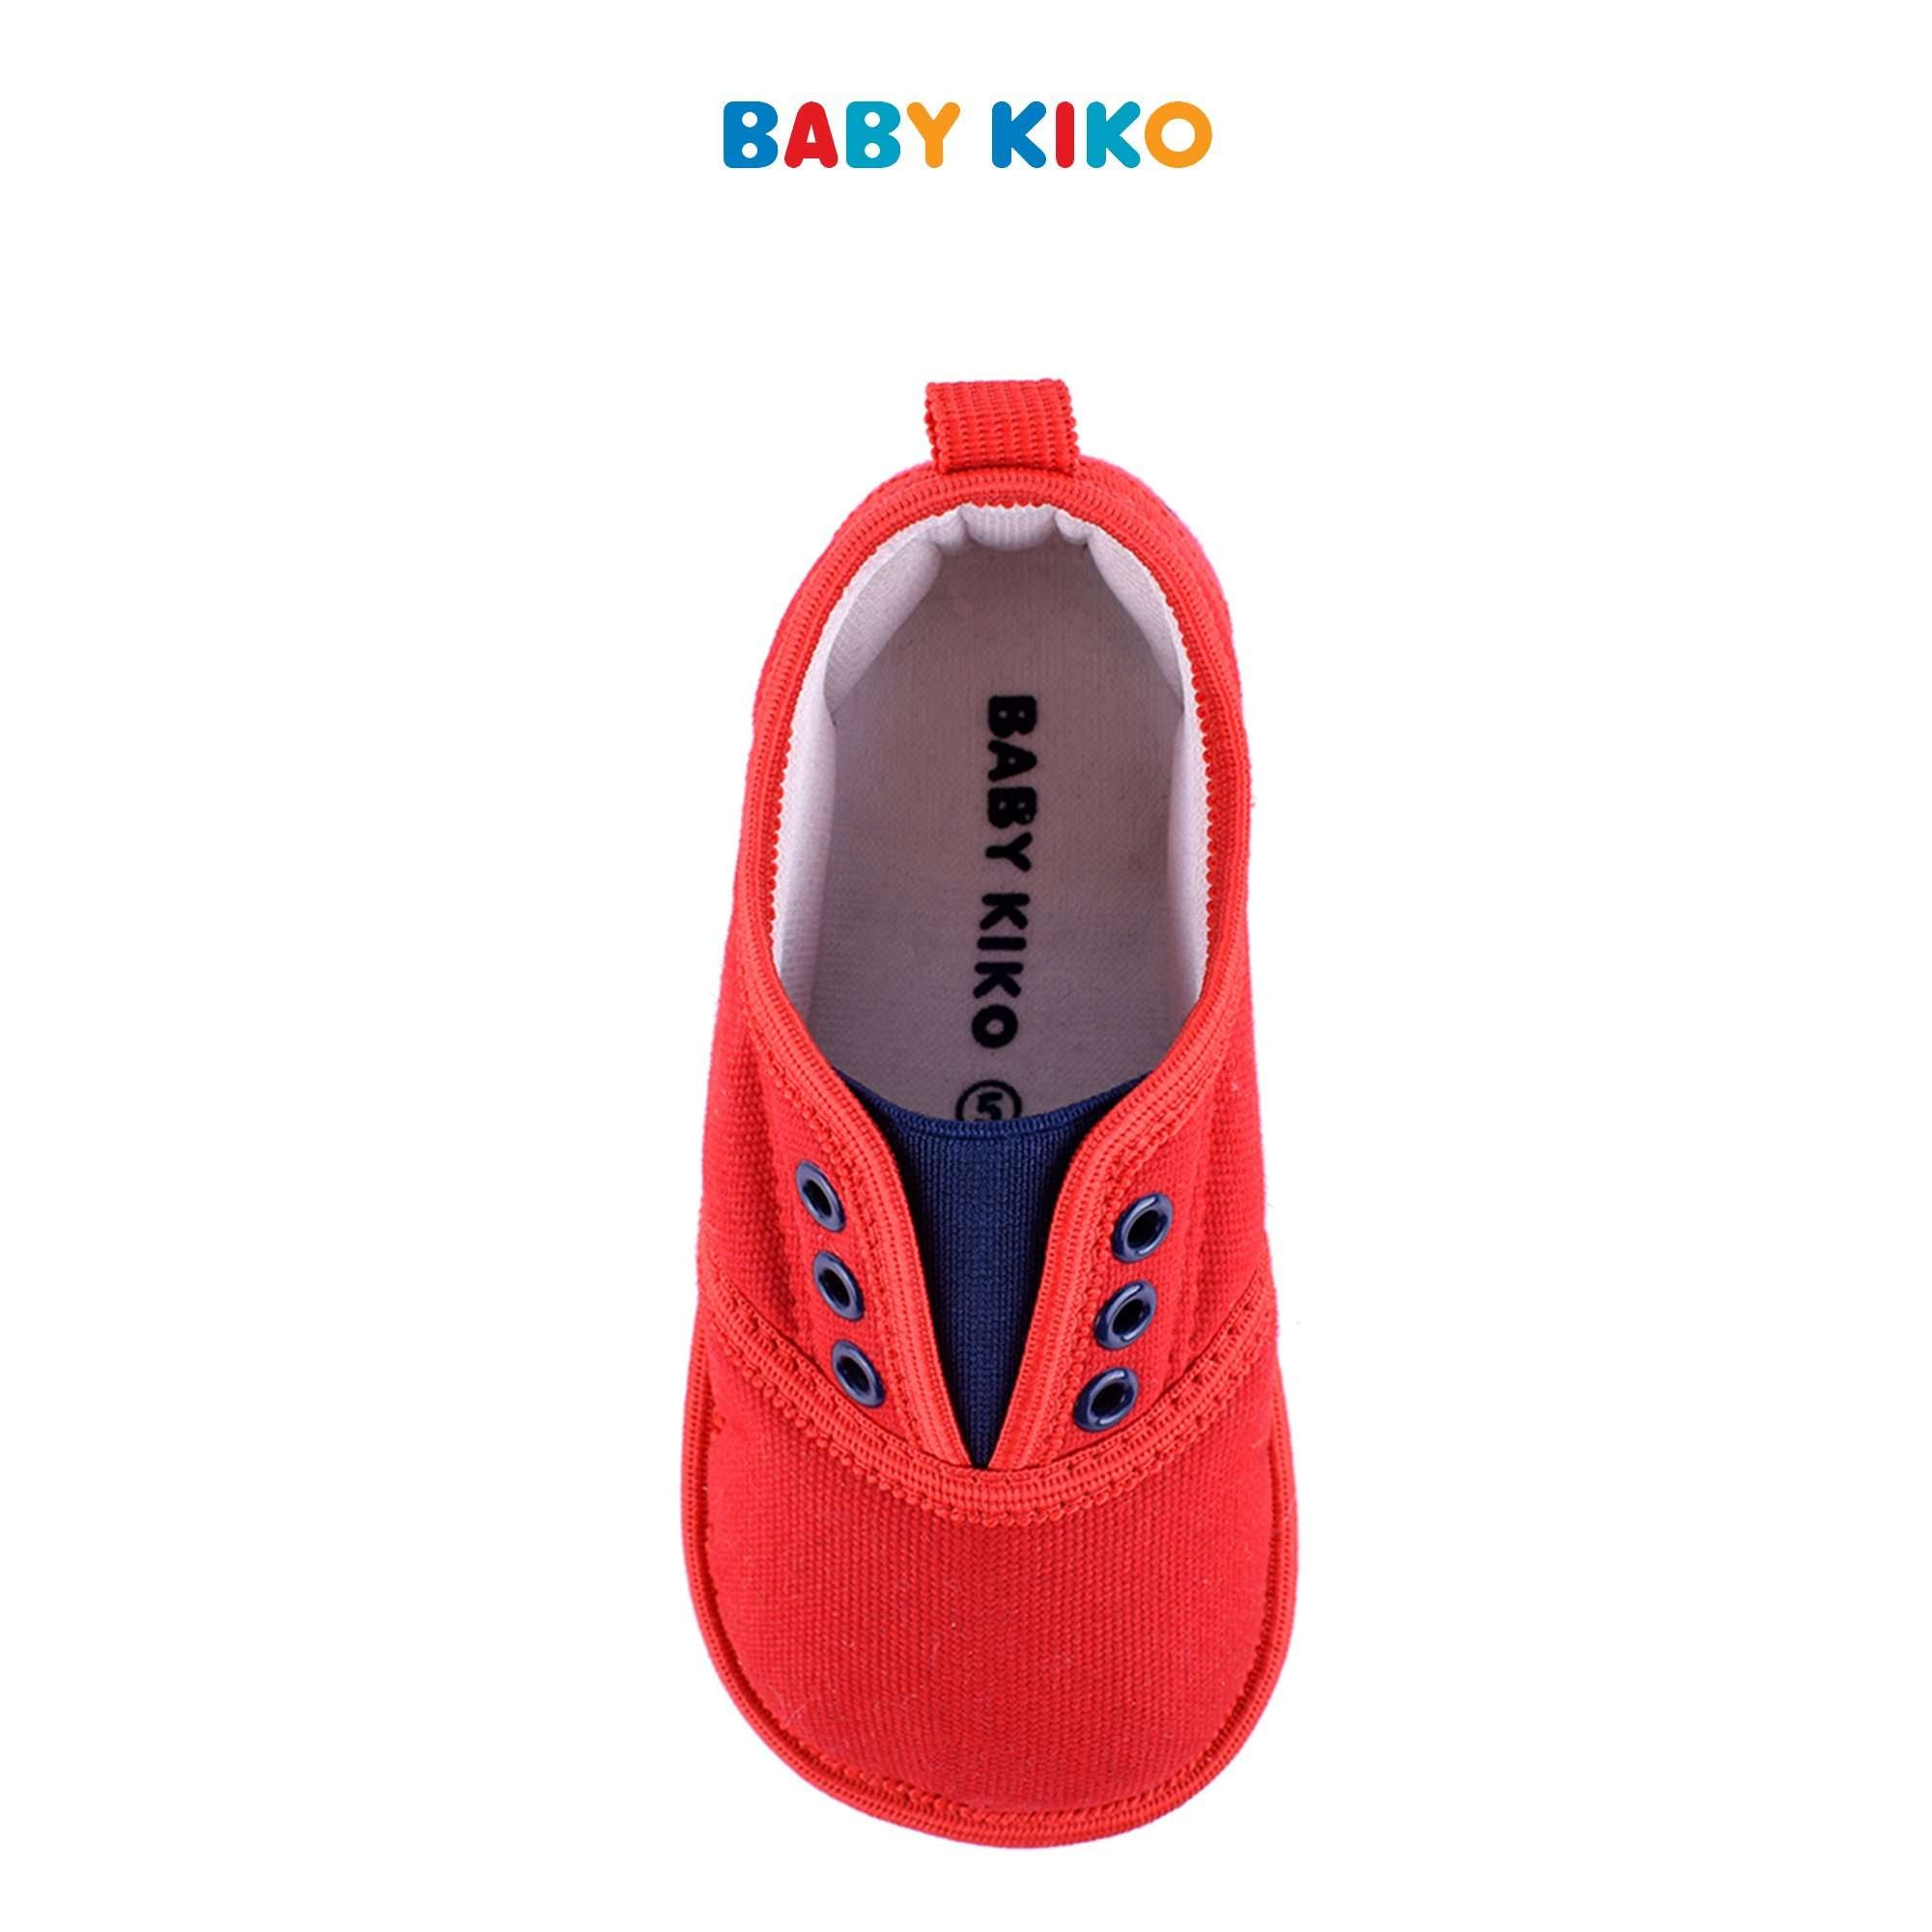 Baby KIKO Toddler Boy Textile Shoes - Red B922106-5090-R5 : Buy Baby KIKO online at CMG.MY